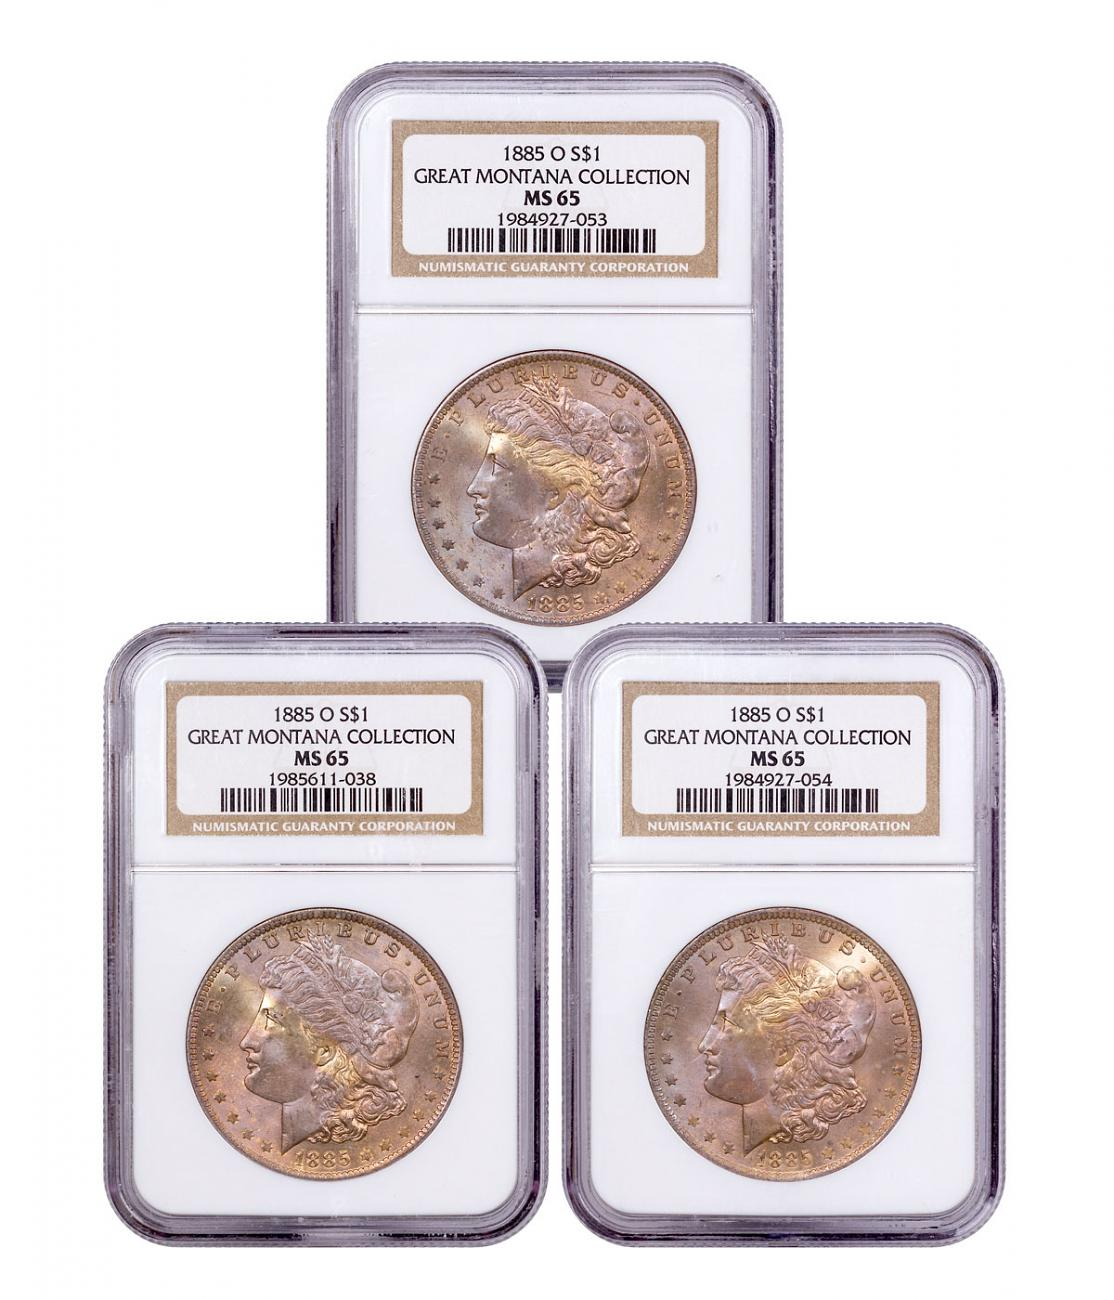 3-Coin Set - 1885-O Morgan Silver Dollar From the Great Montana Collection NGC MS65 Toned CPCR 7053